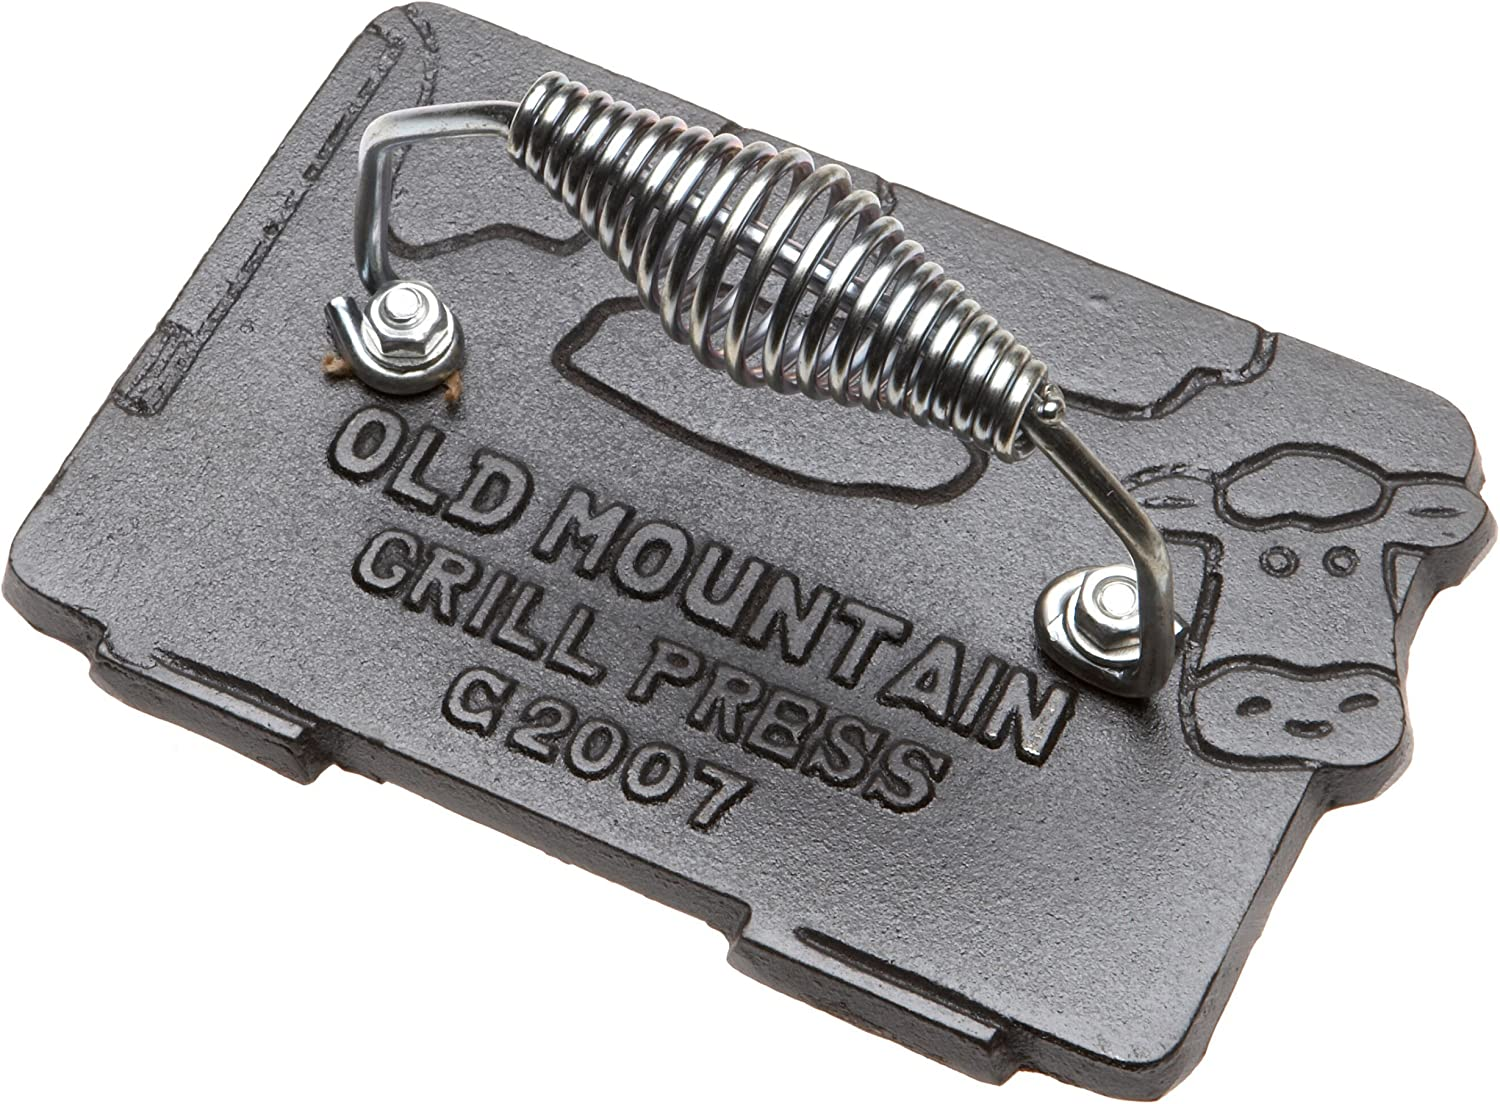 Old Mountain Pre Seasoned 10151 Cow Shaped Bacon/Grill Press, 7 Inch by 4-1/2-Inch